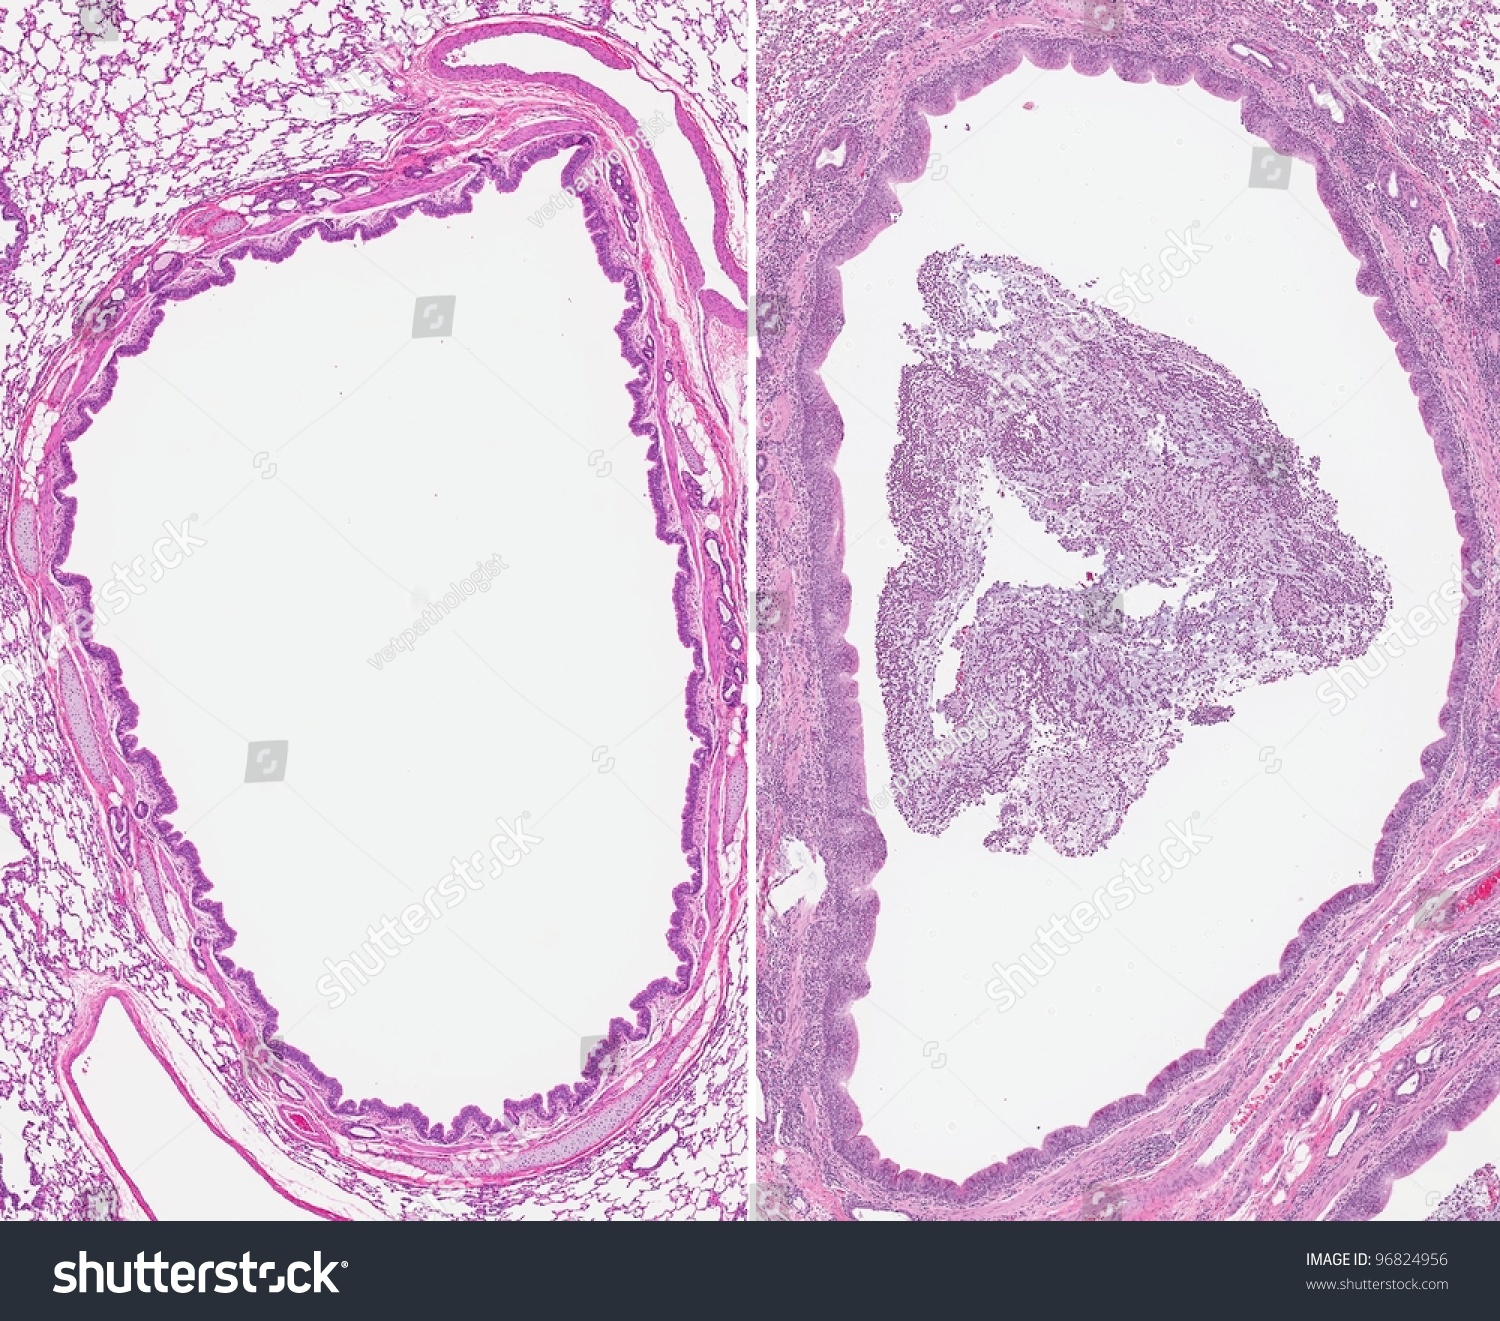 Acute Bronchitis. Inflammation Of The Bronchi (Right) With The Airway Filled With Thick Mucus, Inflammatory Cells And Debris (Sputum). Normal ...